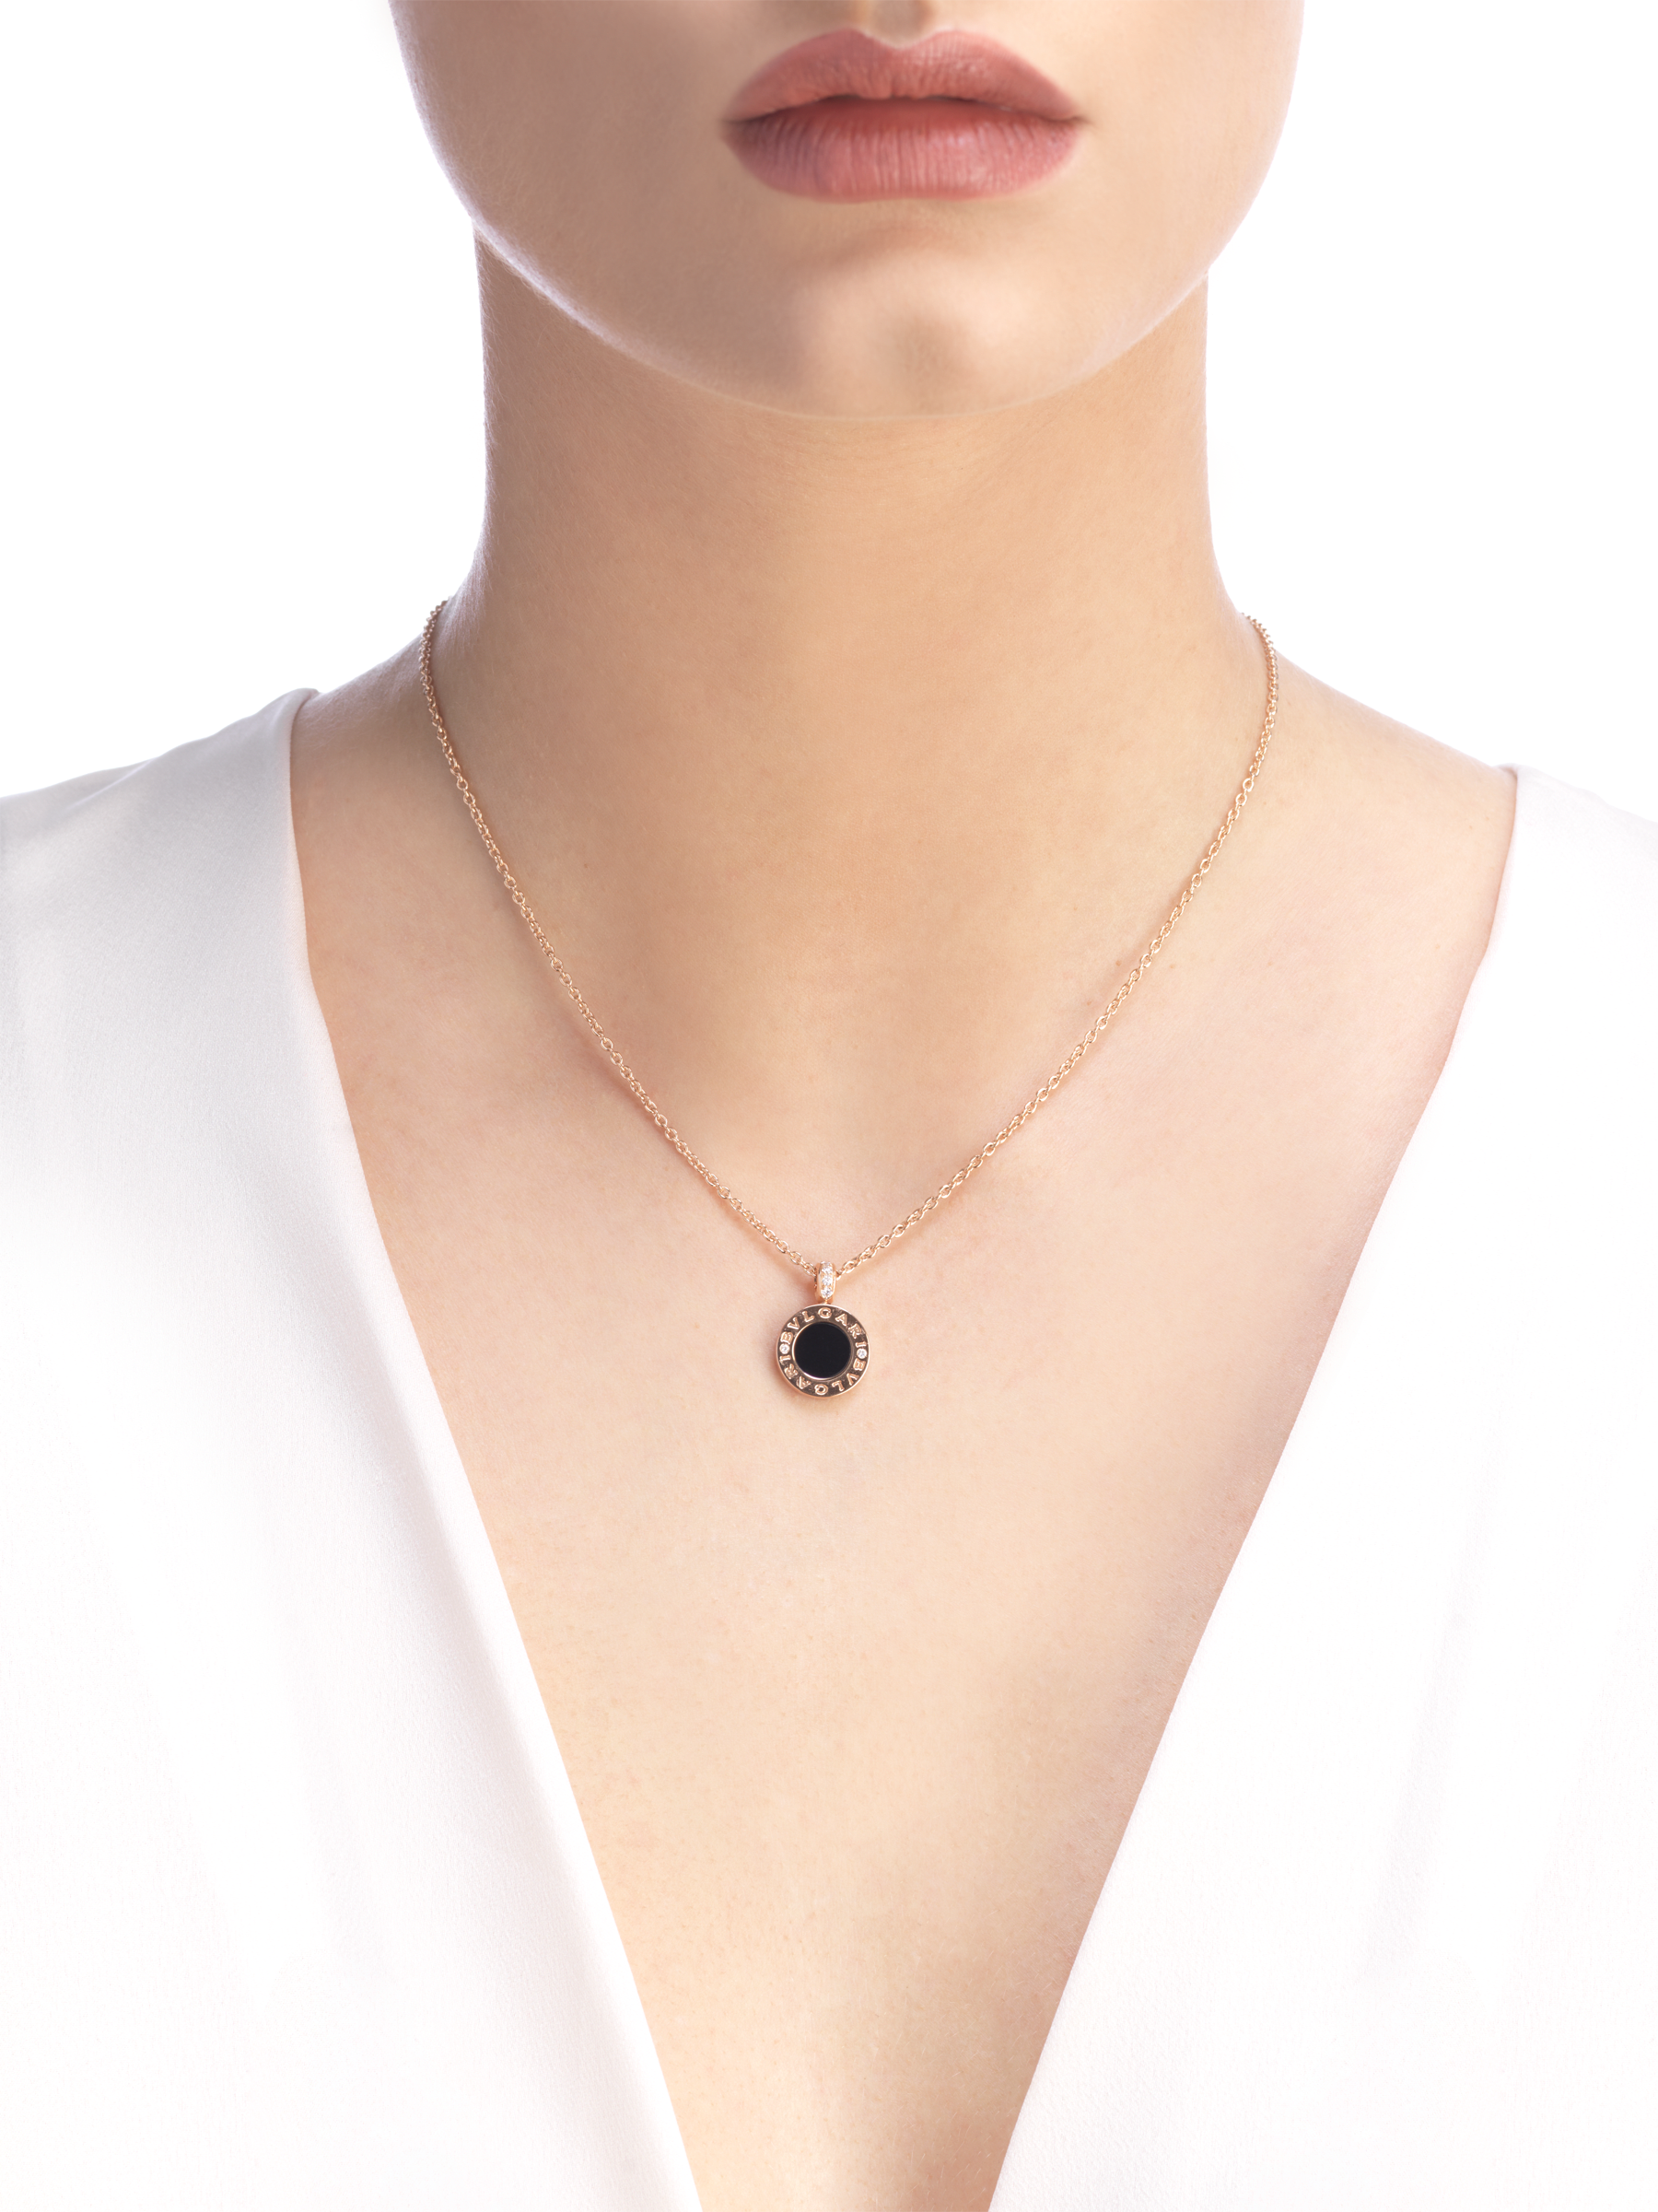 BVLGARI BVLGARI 18 kt rose gold chain and 18 kt rose gold pendant set with mother-of-pearl, onyx and pavé diamonds 347761 image 4